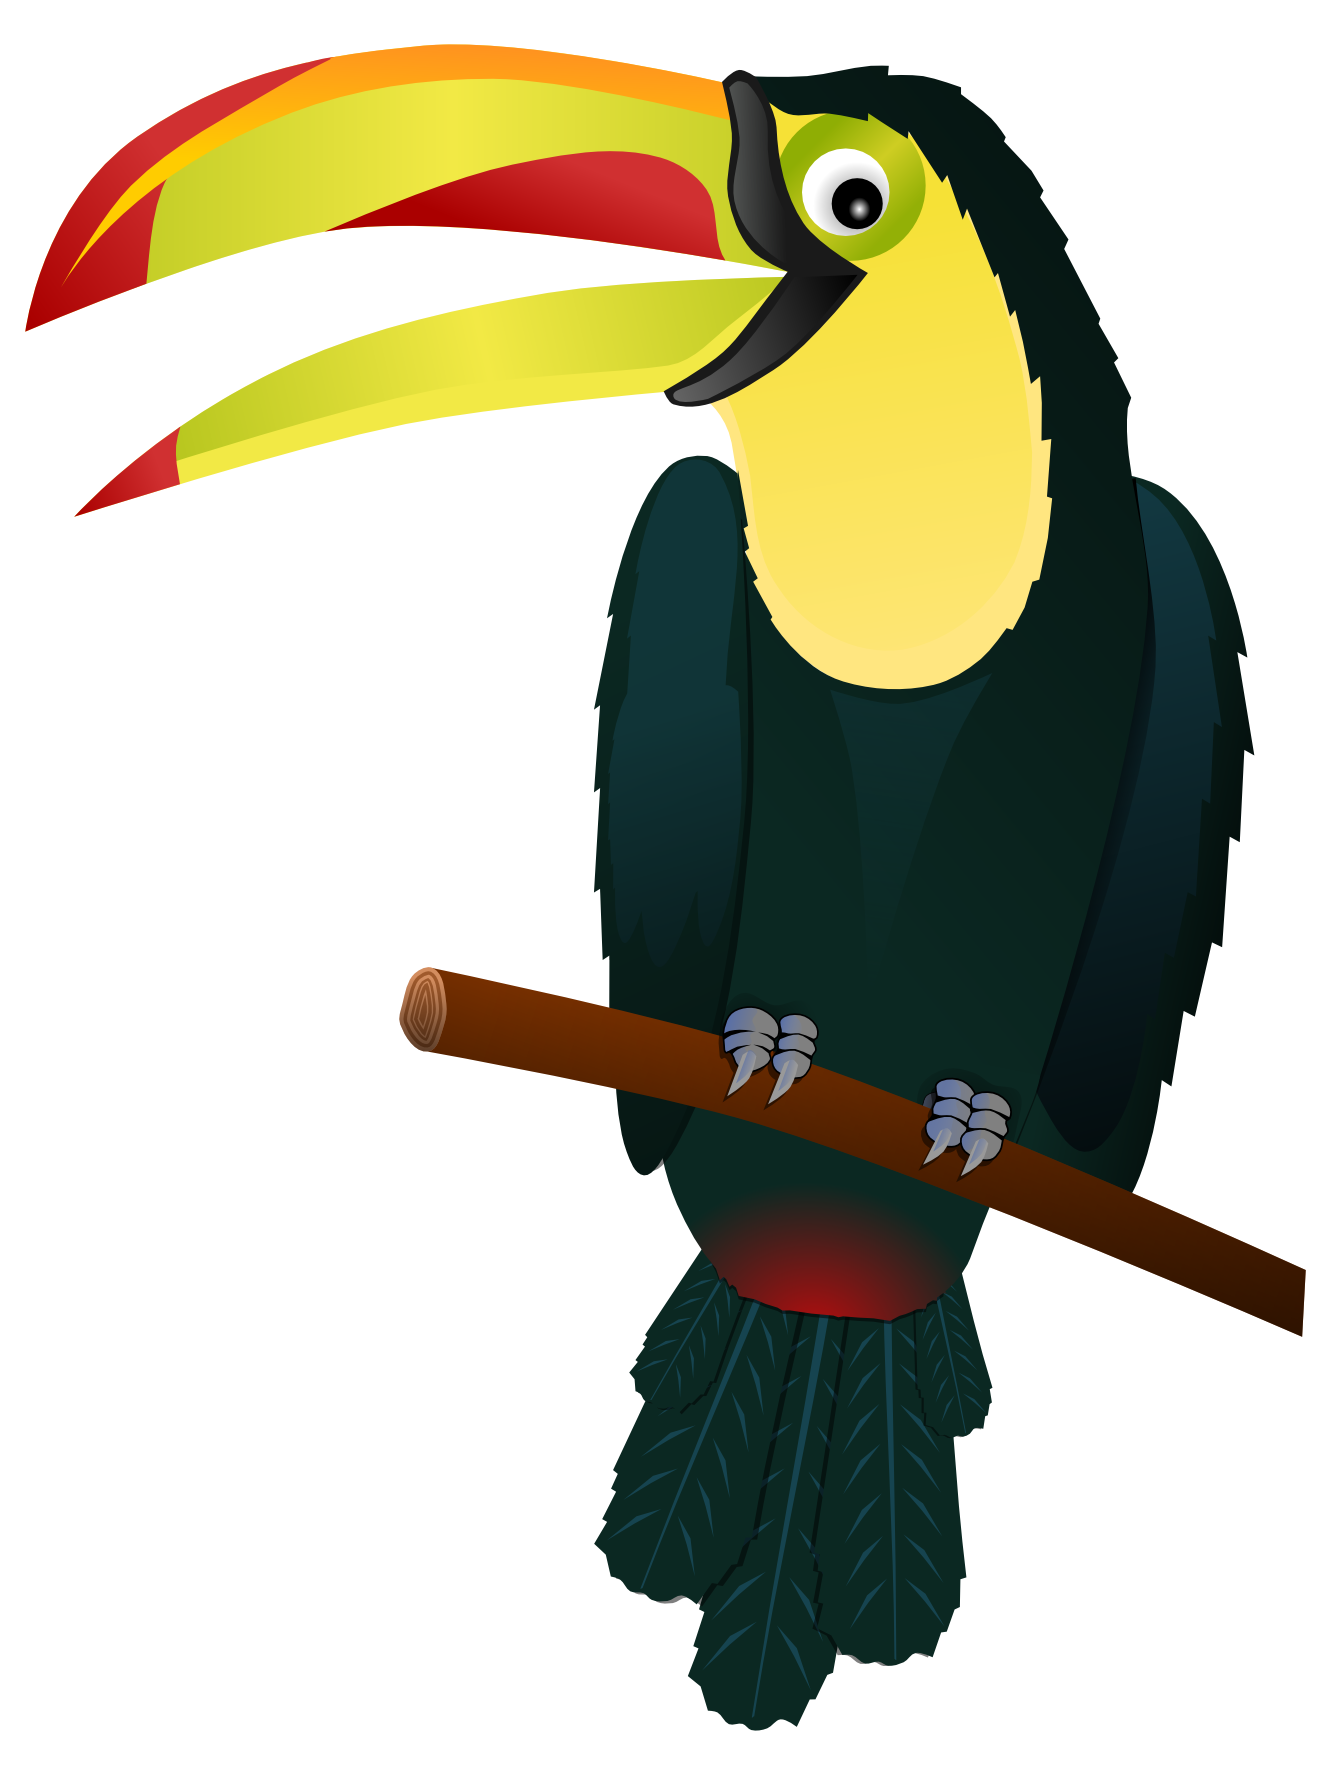 Toucan clipart #9, Download drawings